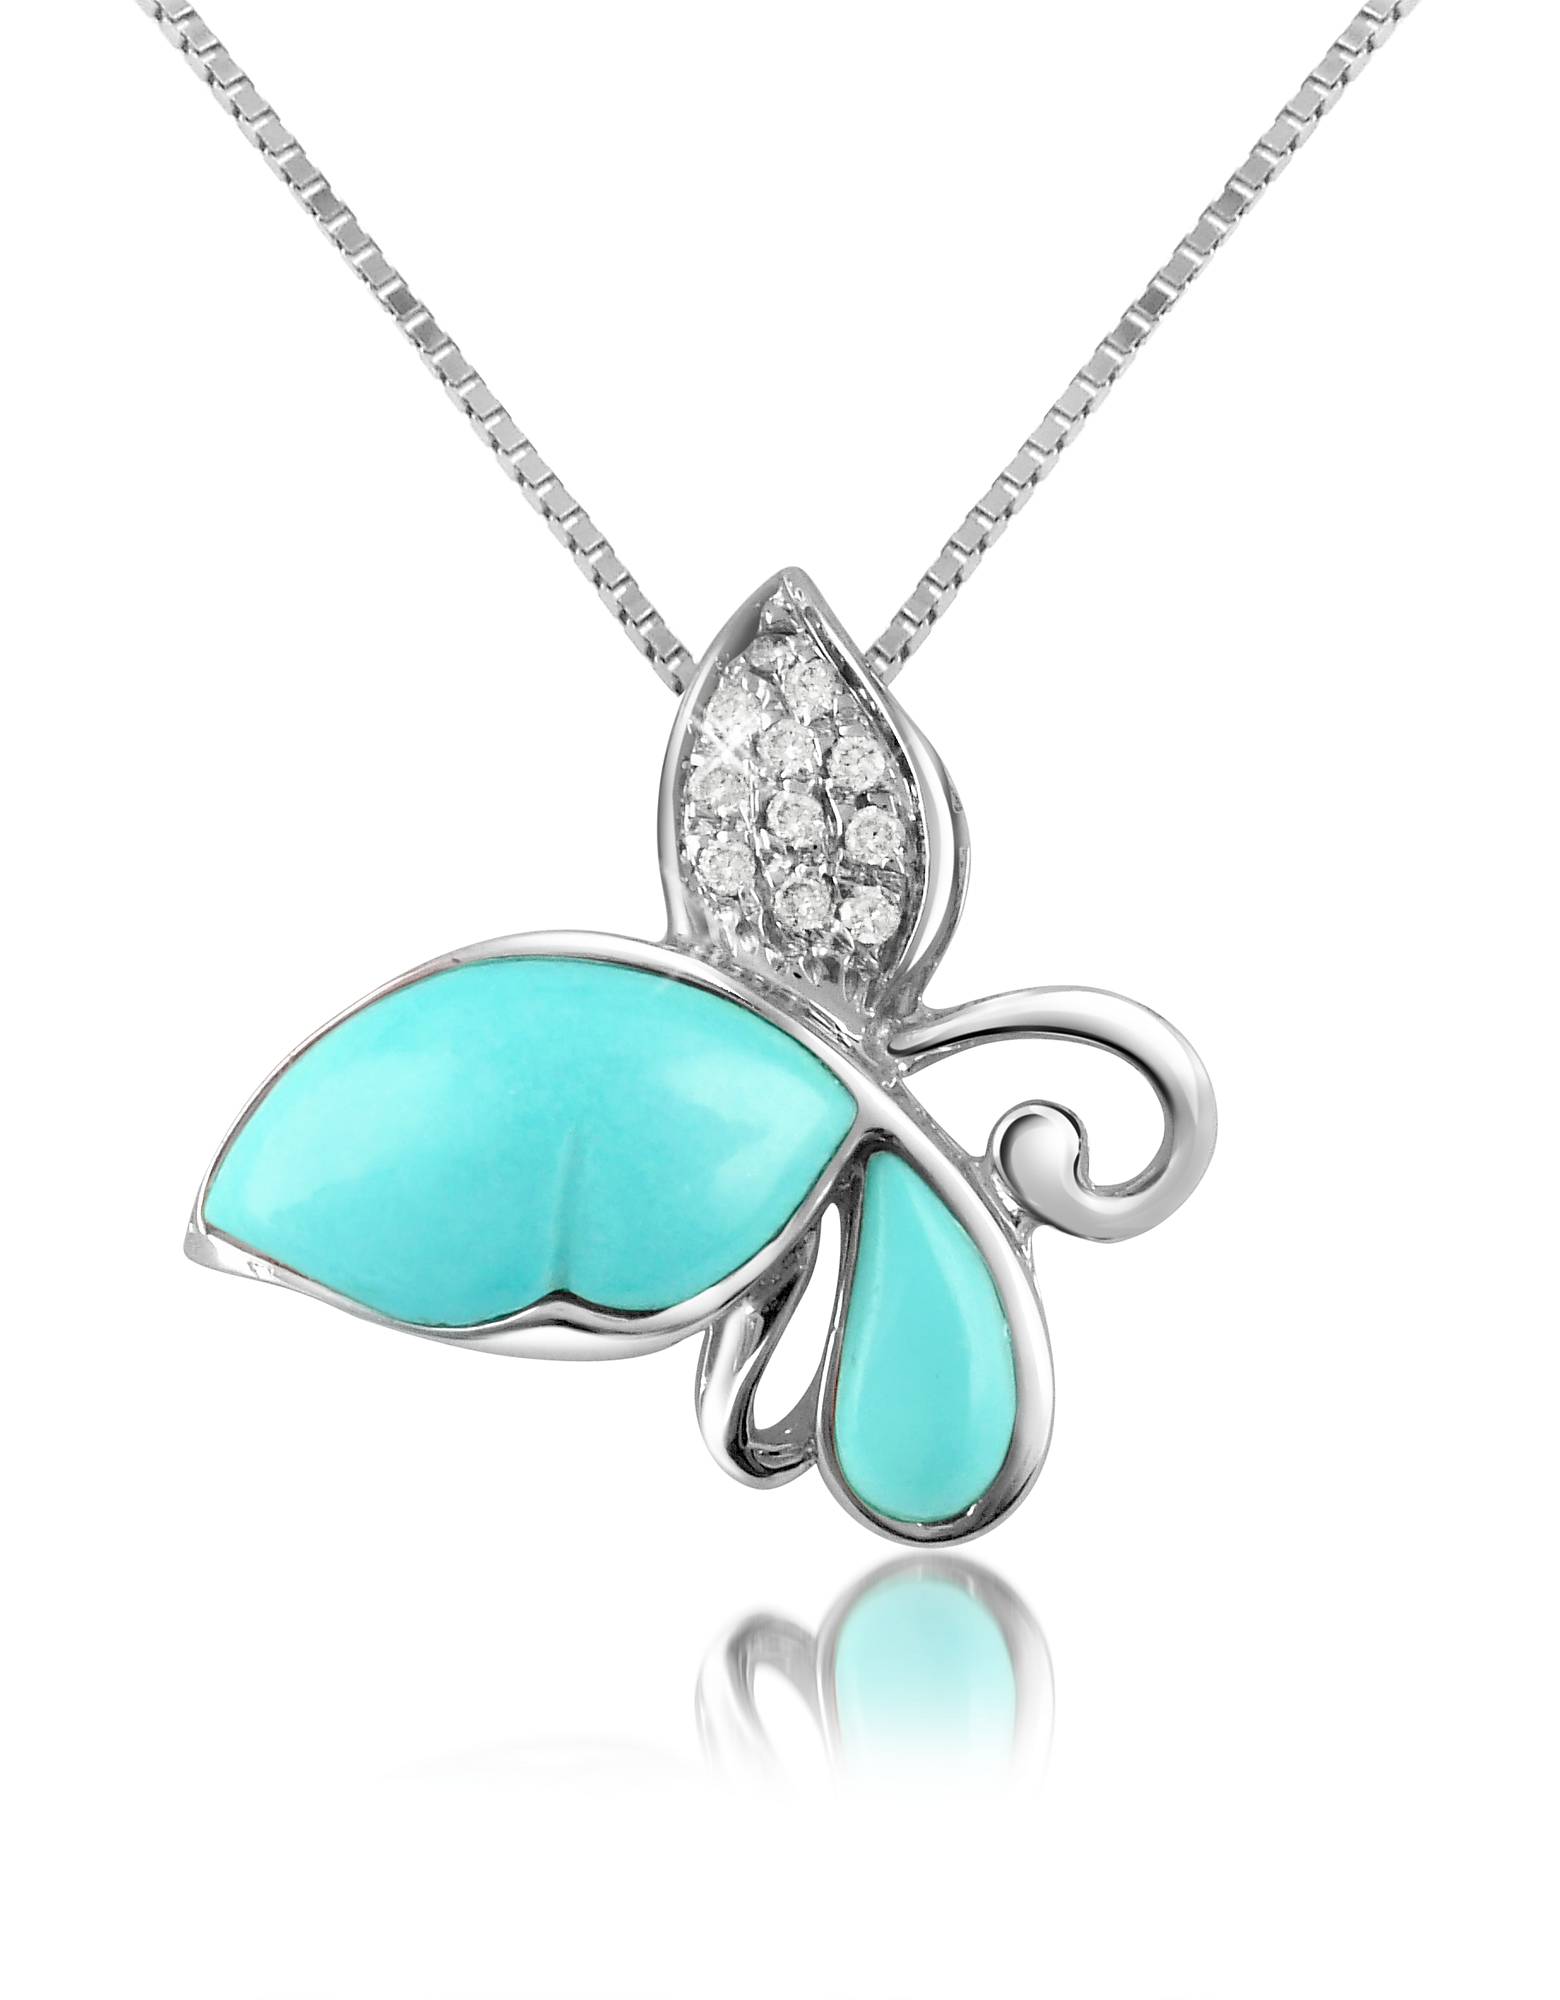 Del Gatto Necklaces, Diamond Gemstone Butterfly 18K Gold Pendant Necklace